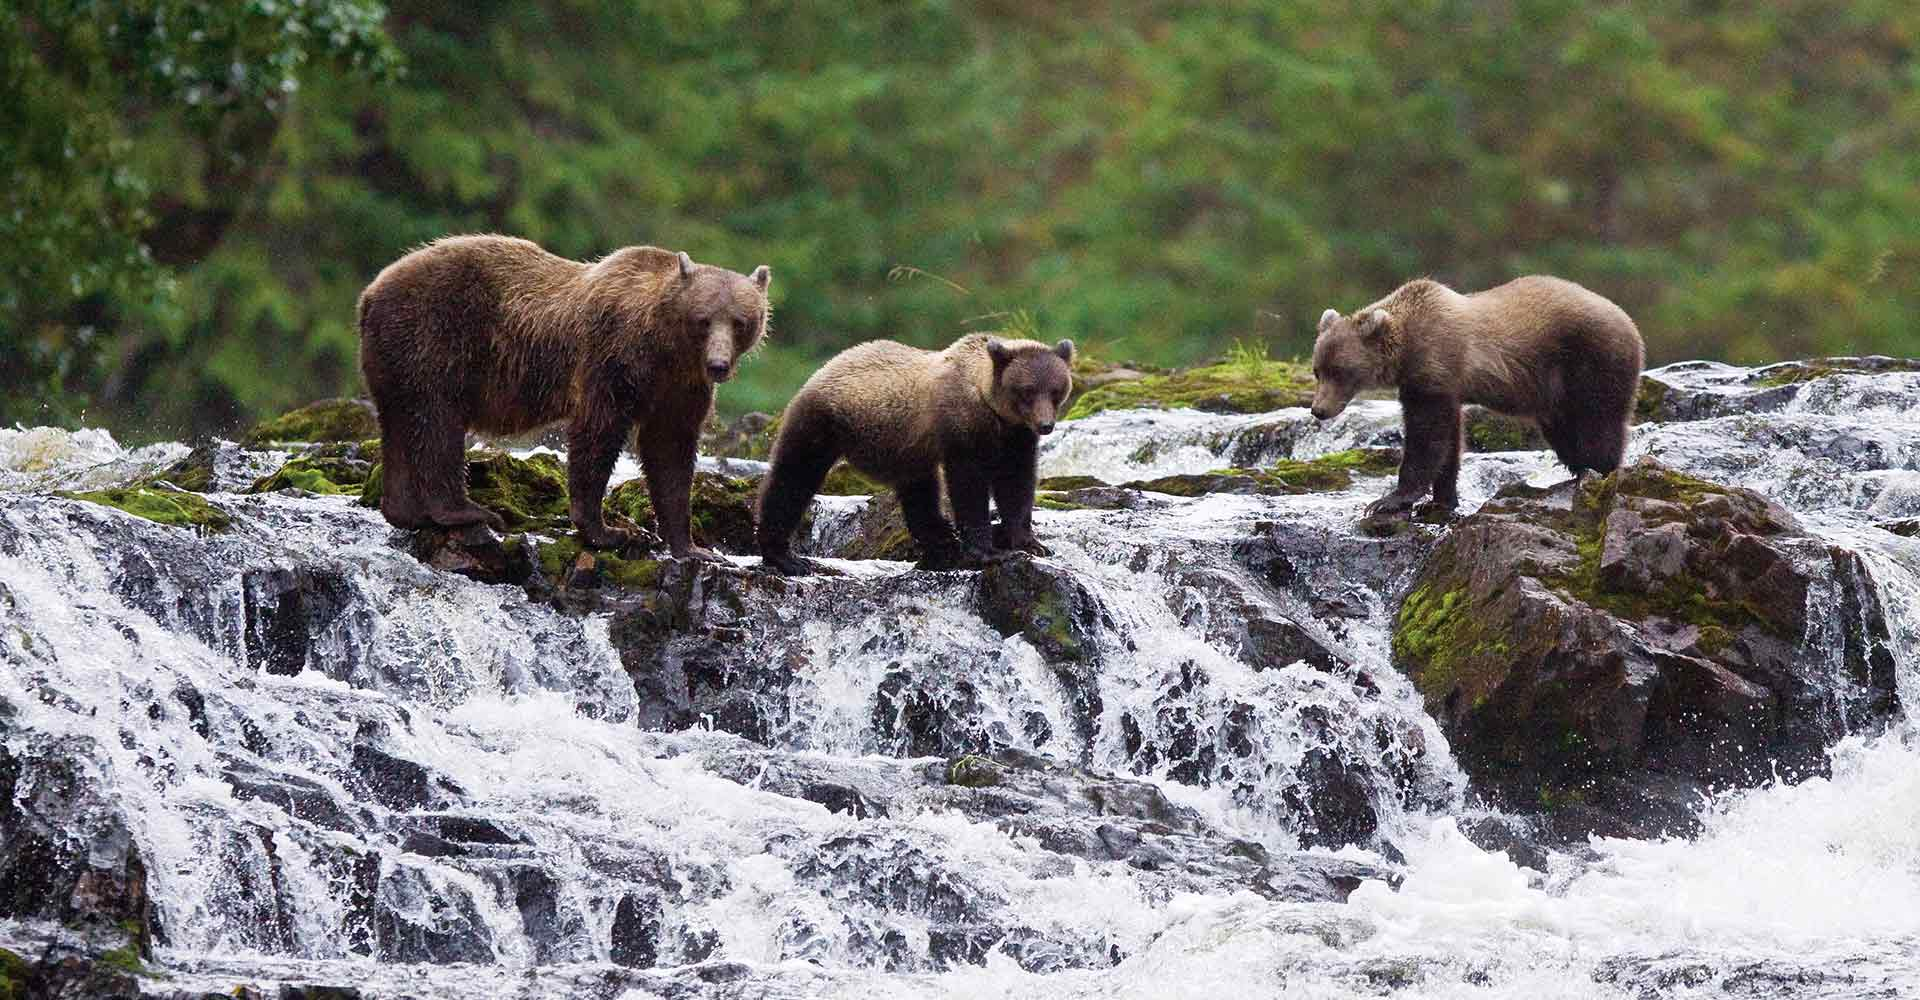 Bears at top of stream waiting for salmon